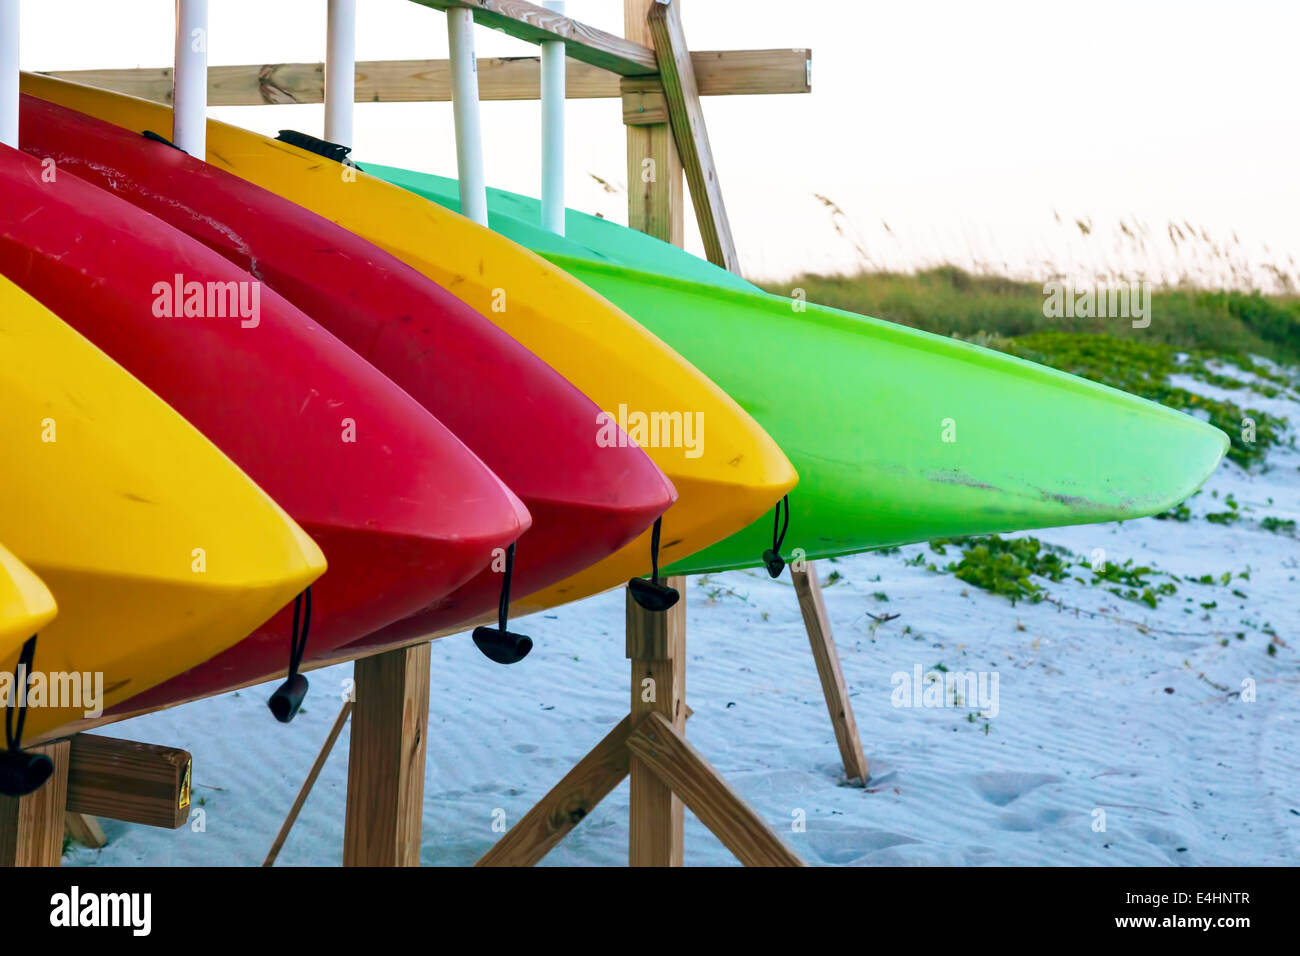 Colorful rental kayaks stored on a rack at a Key Biscayne beach in Miami, Florida, USA. Stock Photo